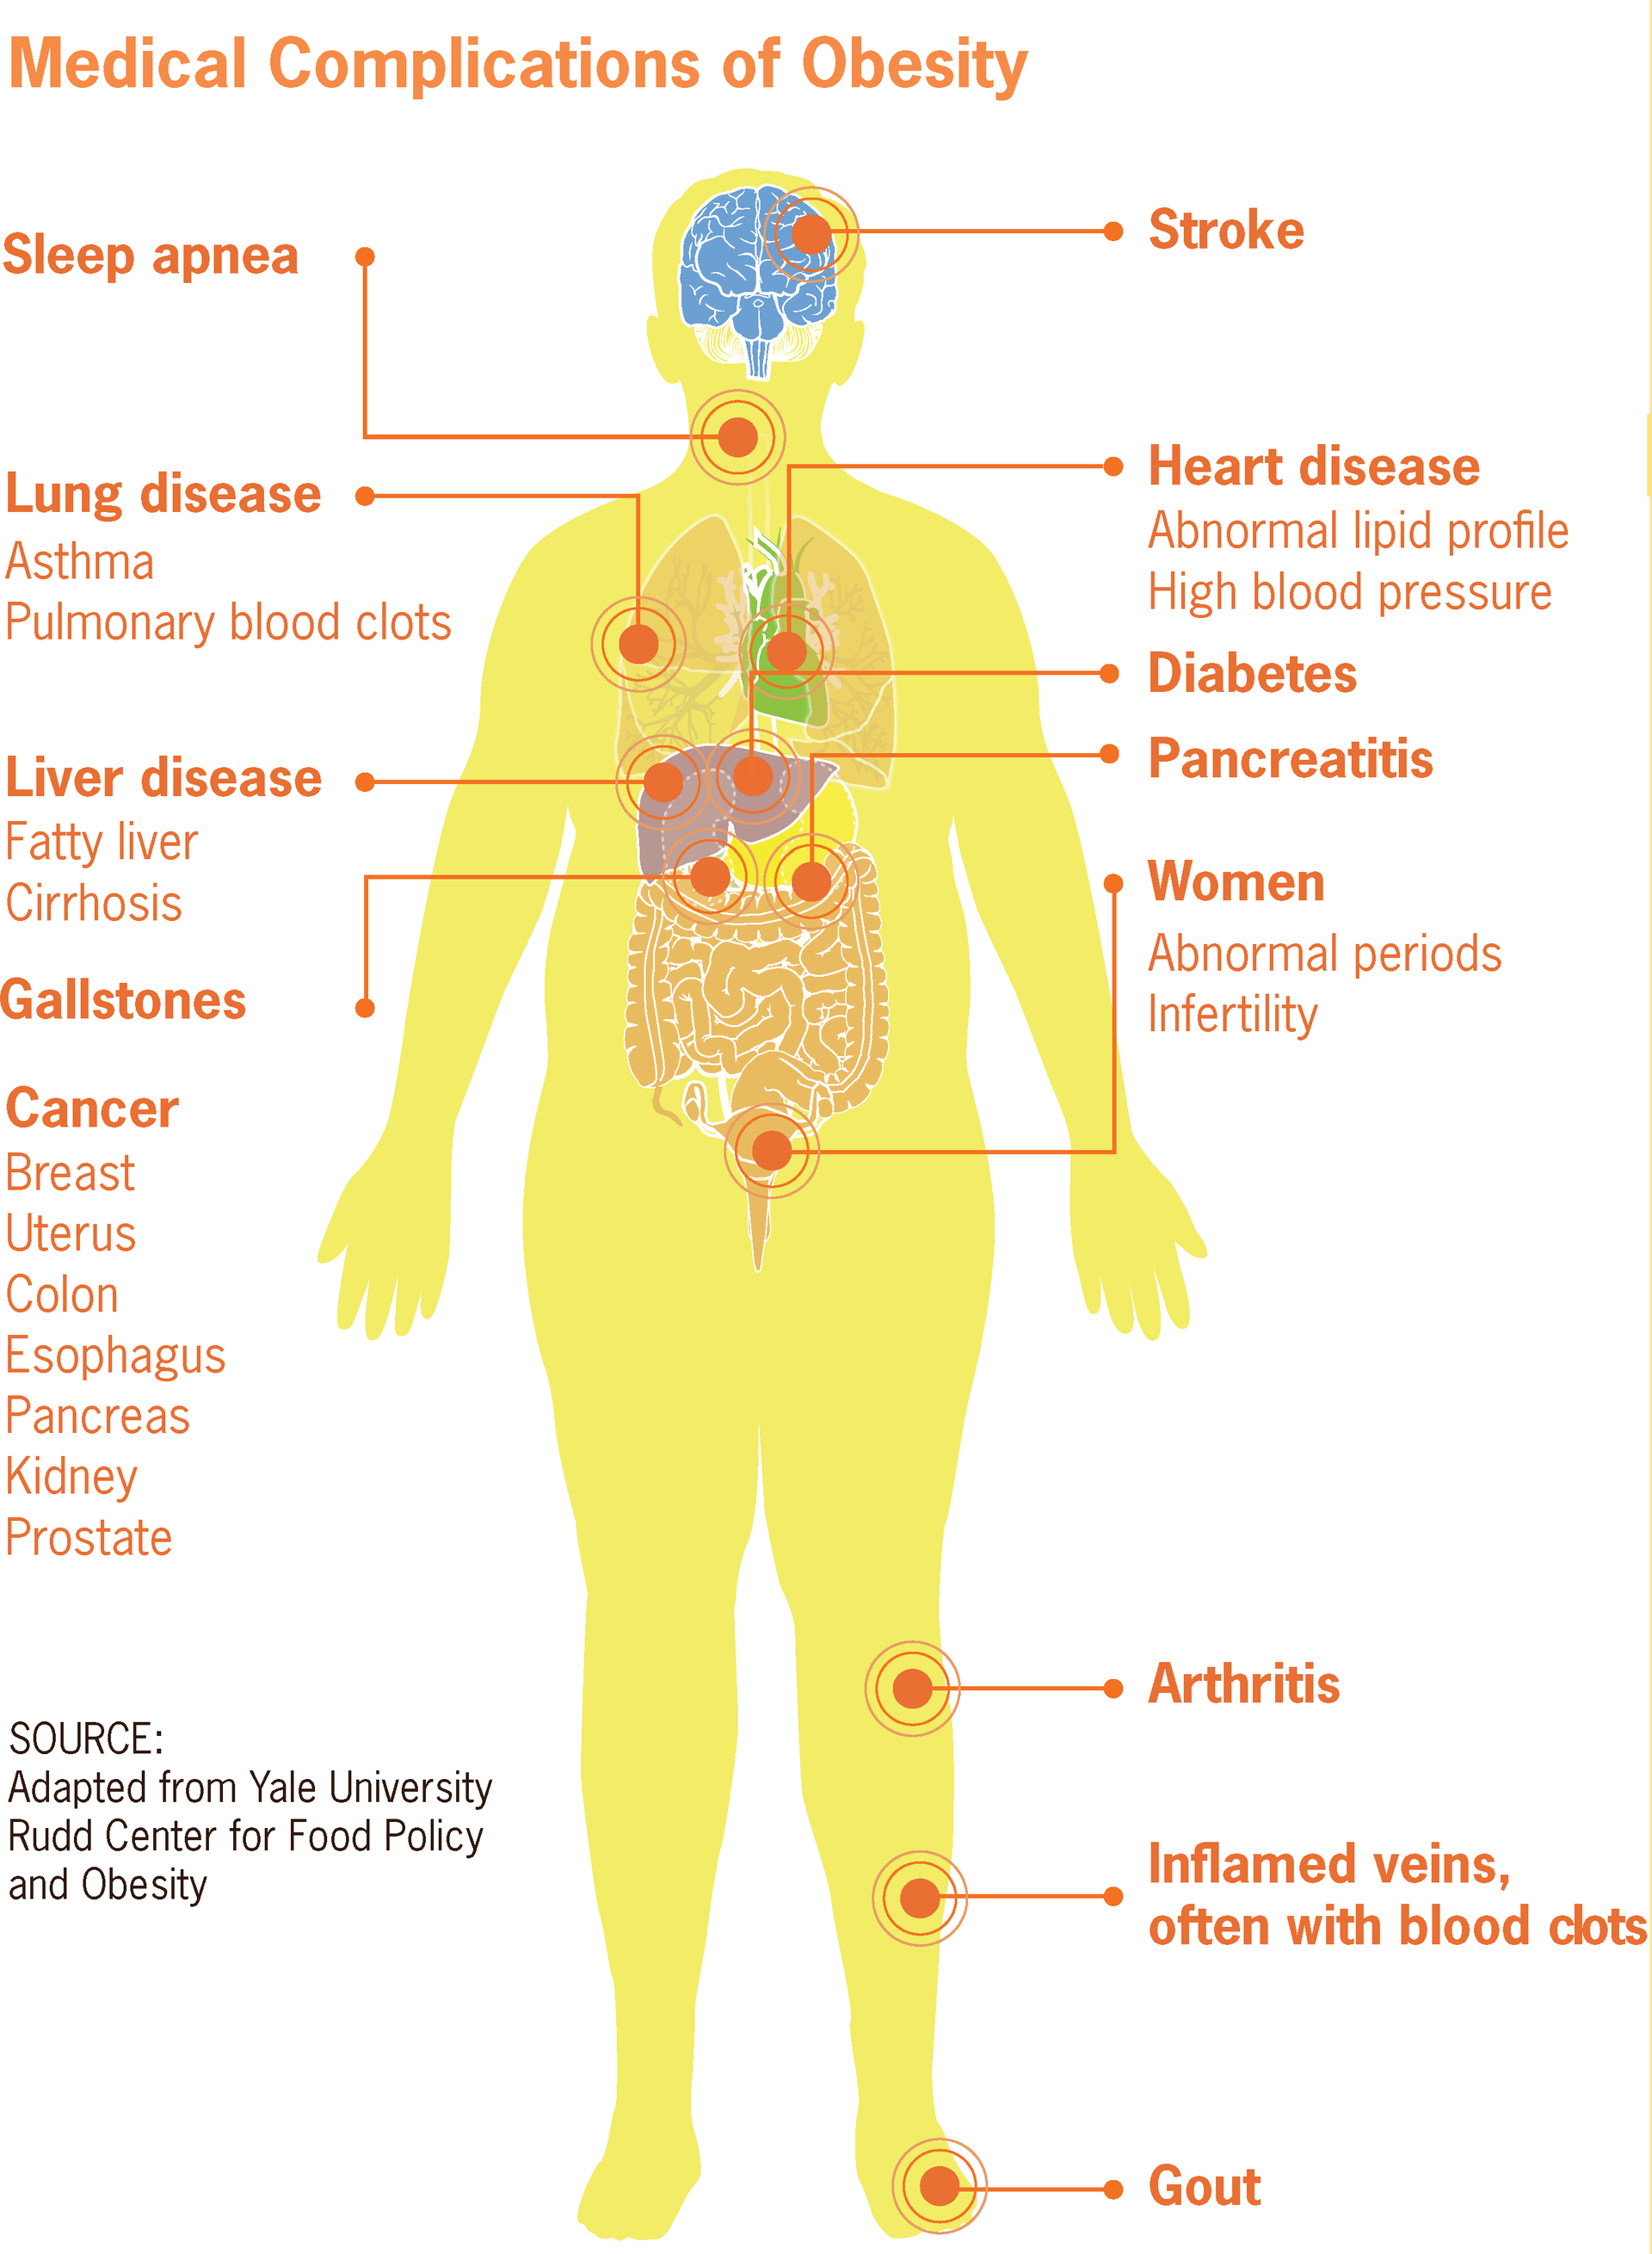 obesity-associated morbidity